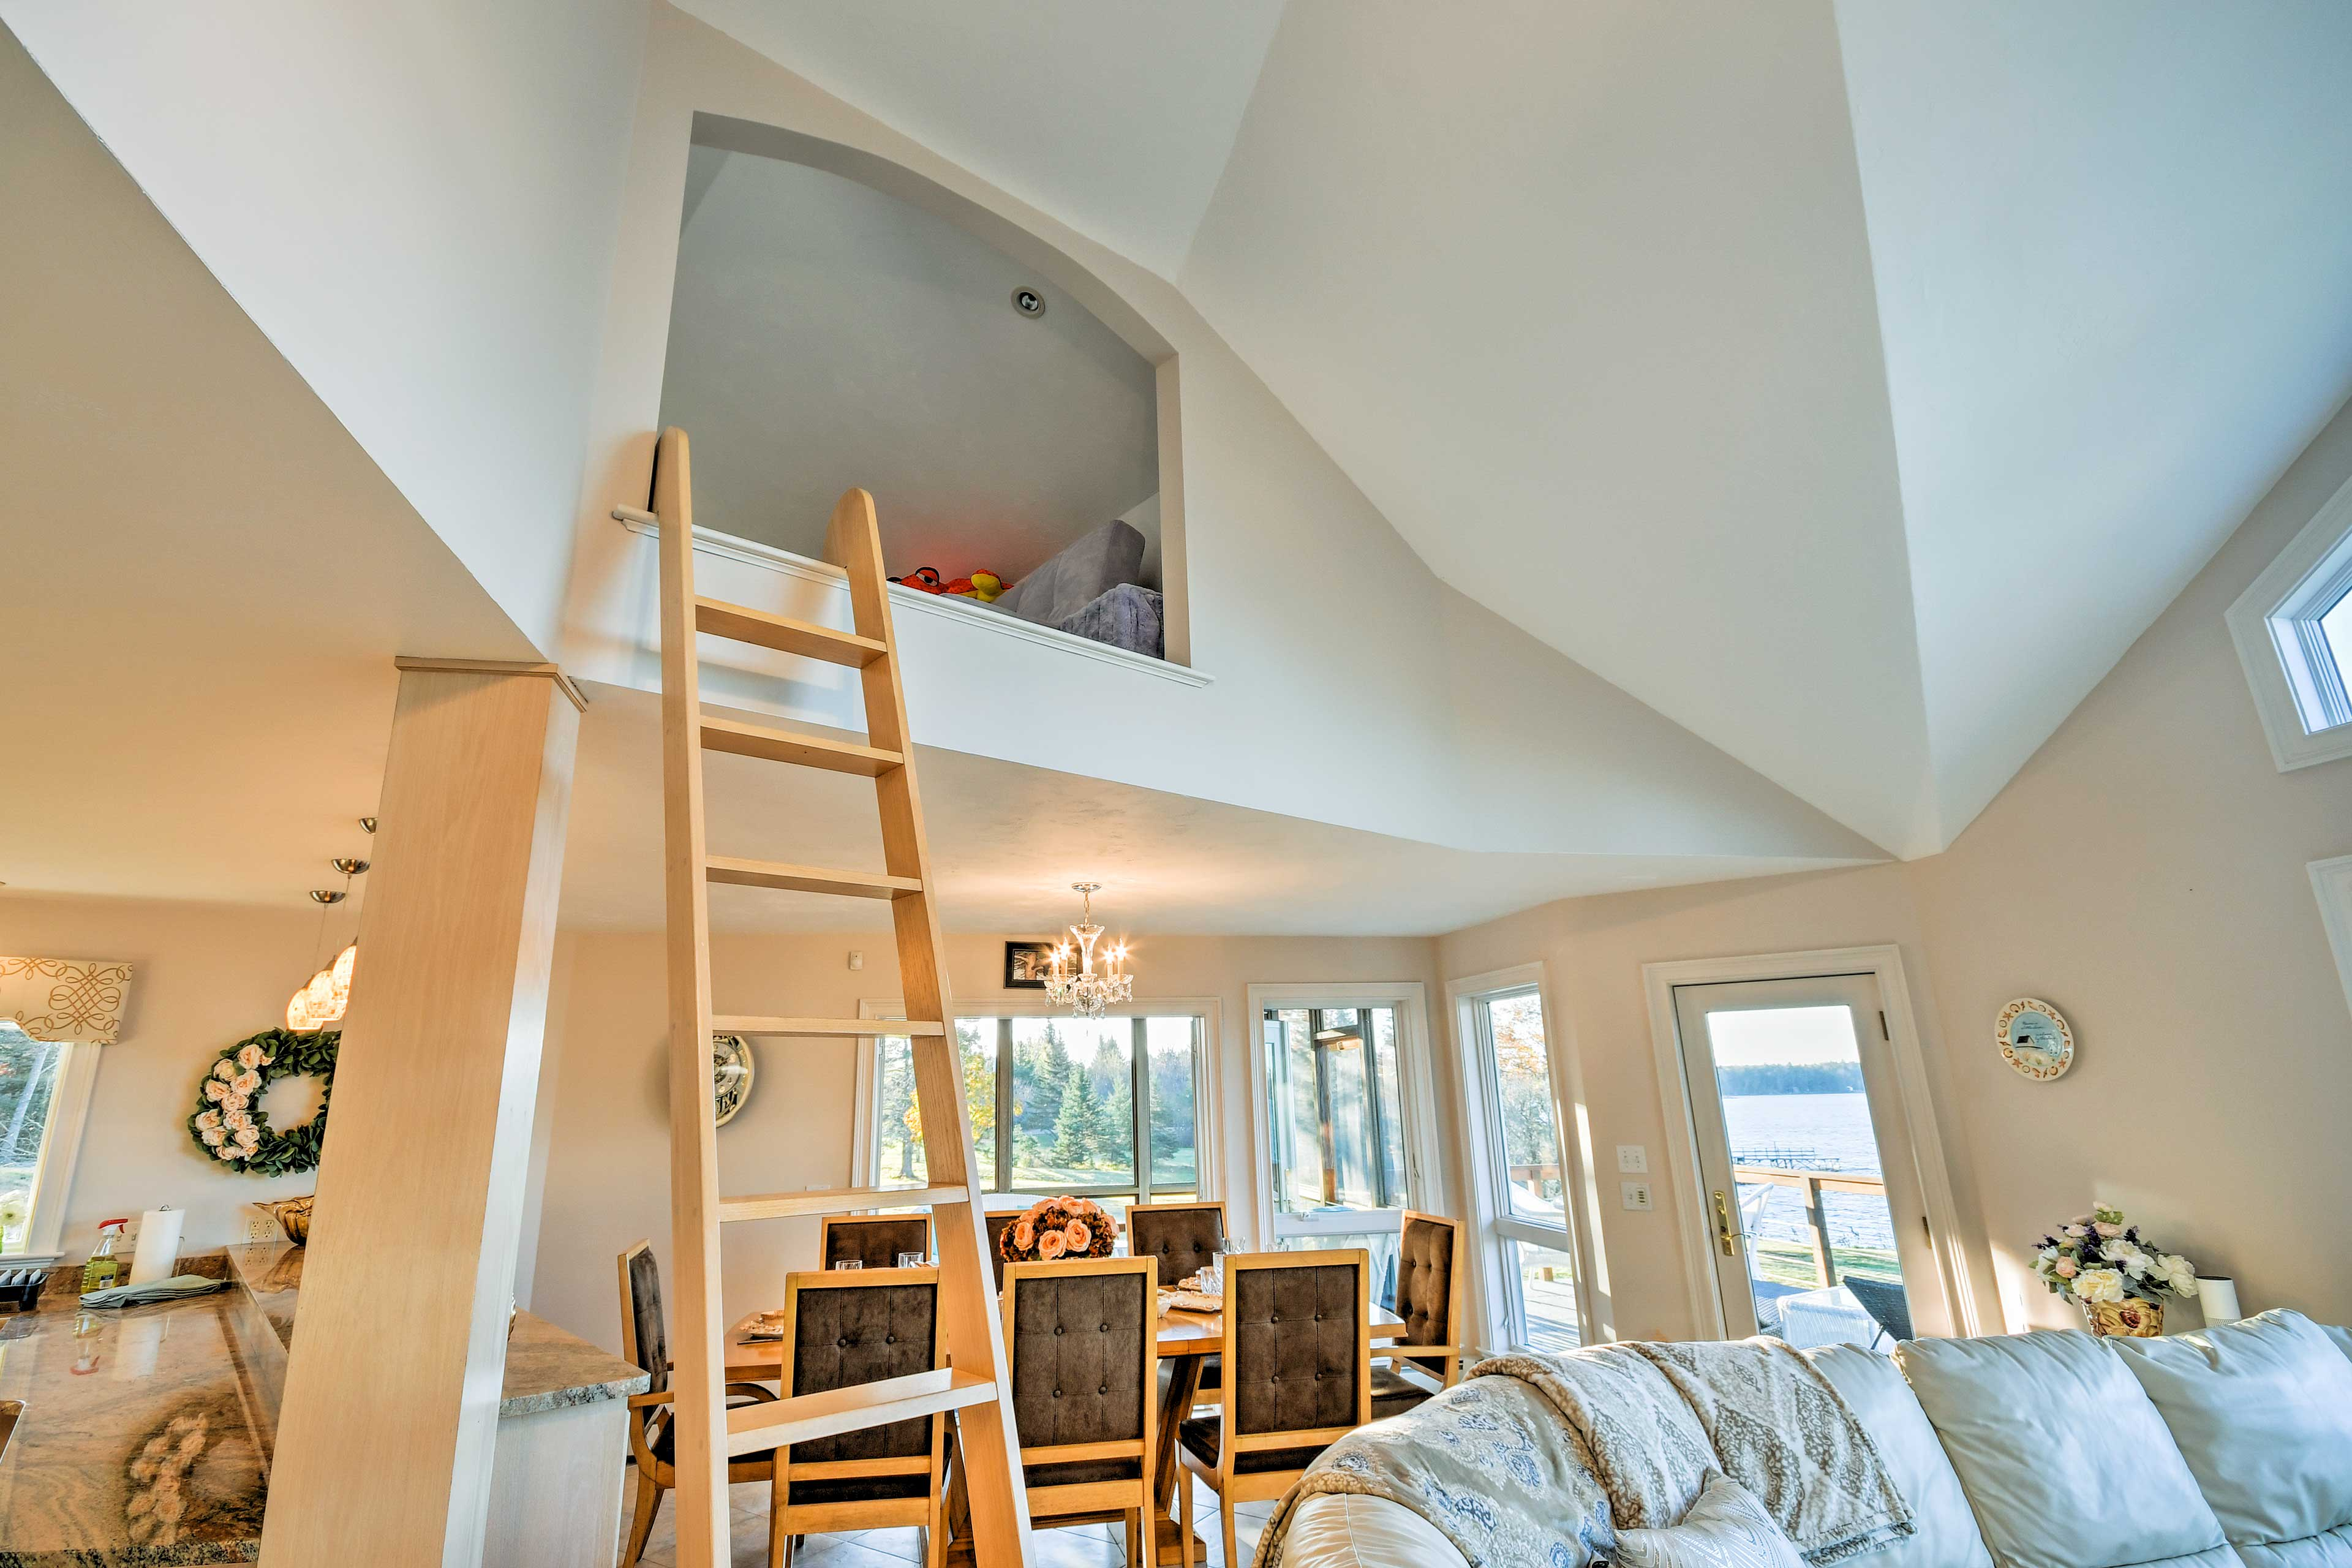 The kids can find a secret retreat in the loft above the living room!